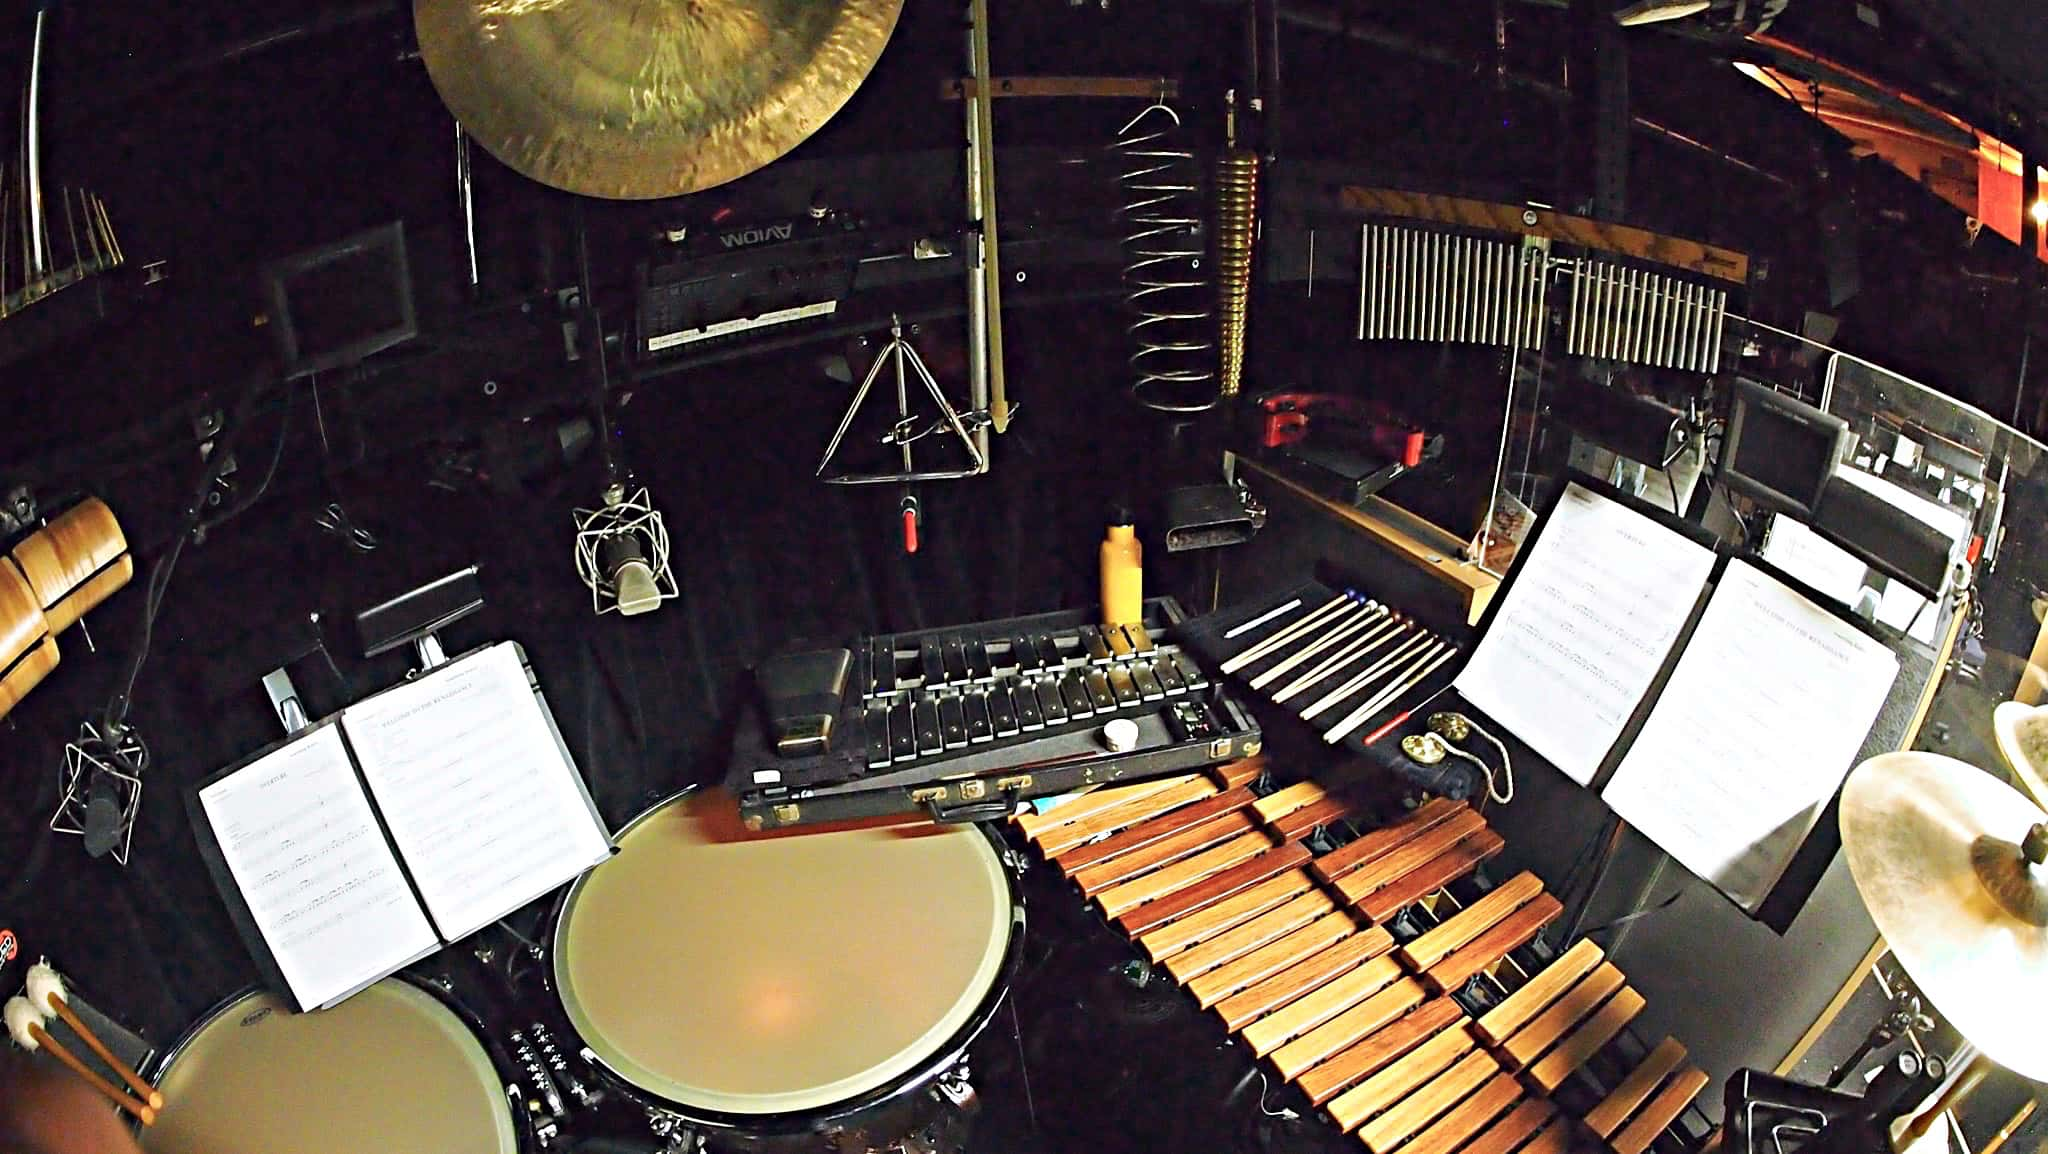 Sean Ritenauer's percussion setup for the Broadway production of Something Rotten at the St James Theatre.